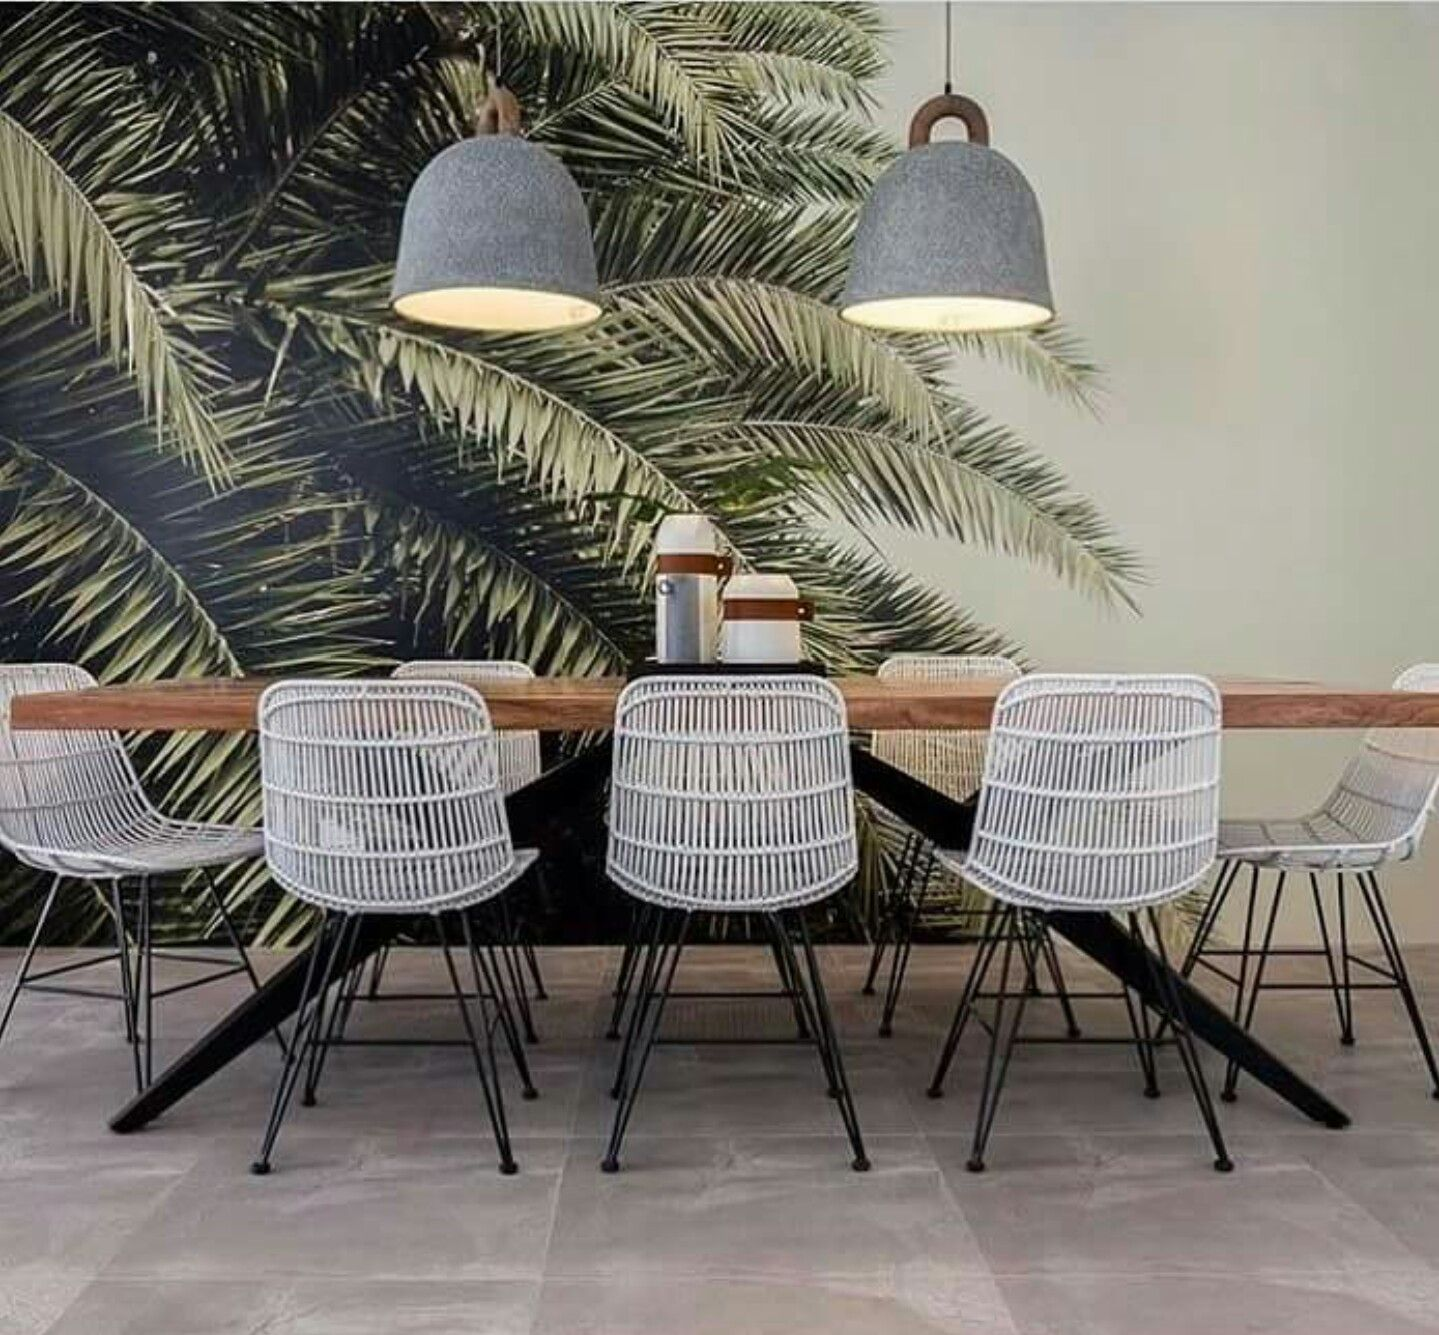 18 Tropical Dining Room Designs Ideas: Meeting Room Design Image By Olivia Ogden On Kitchen